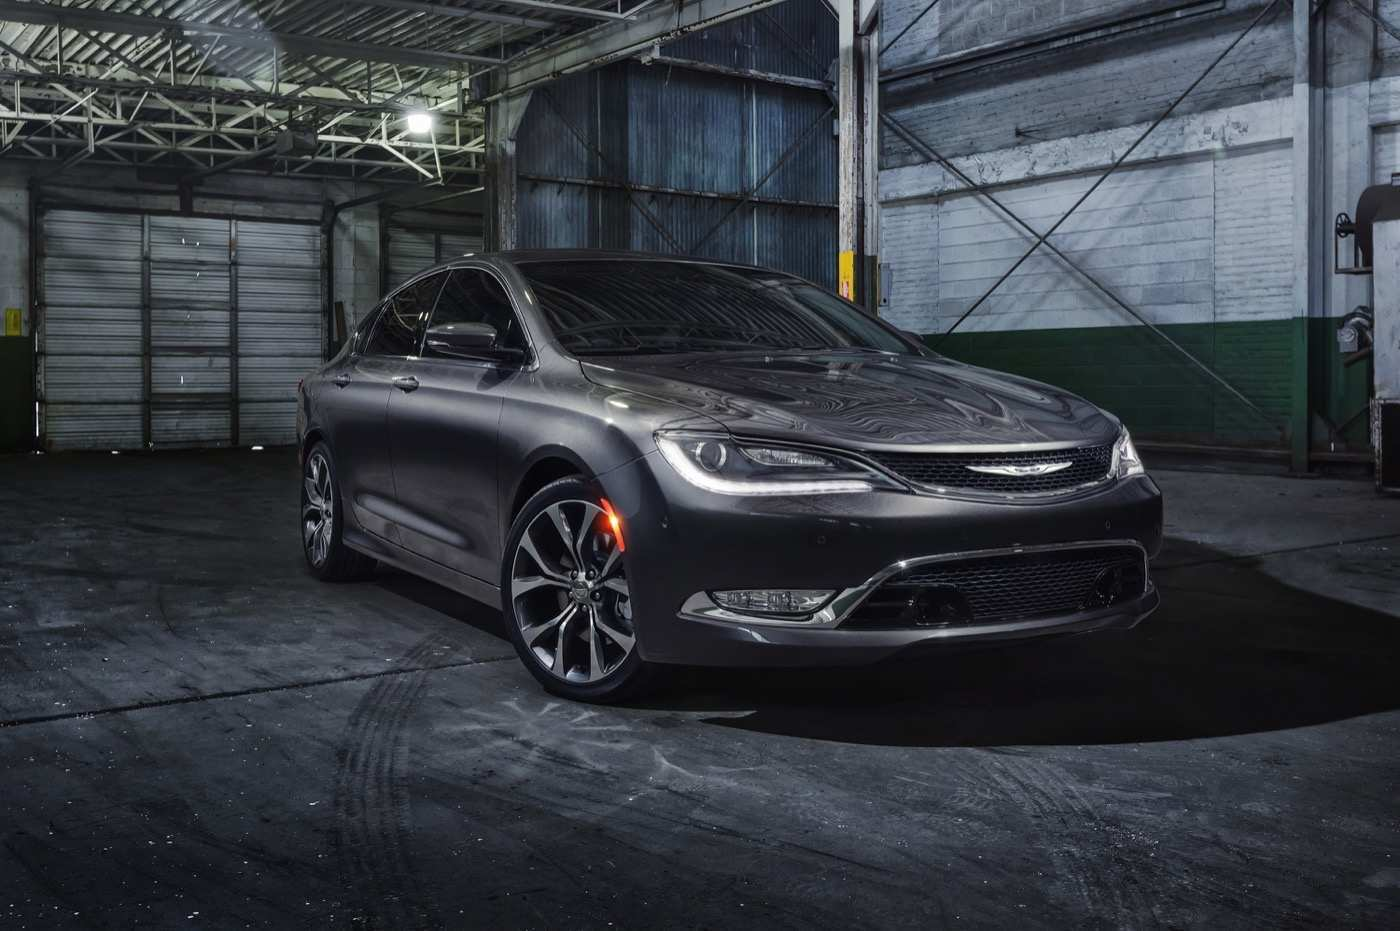 33 All New 2019 Chrysler 200 Redesign And Review